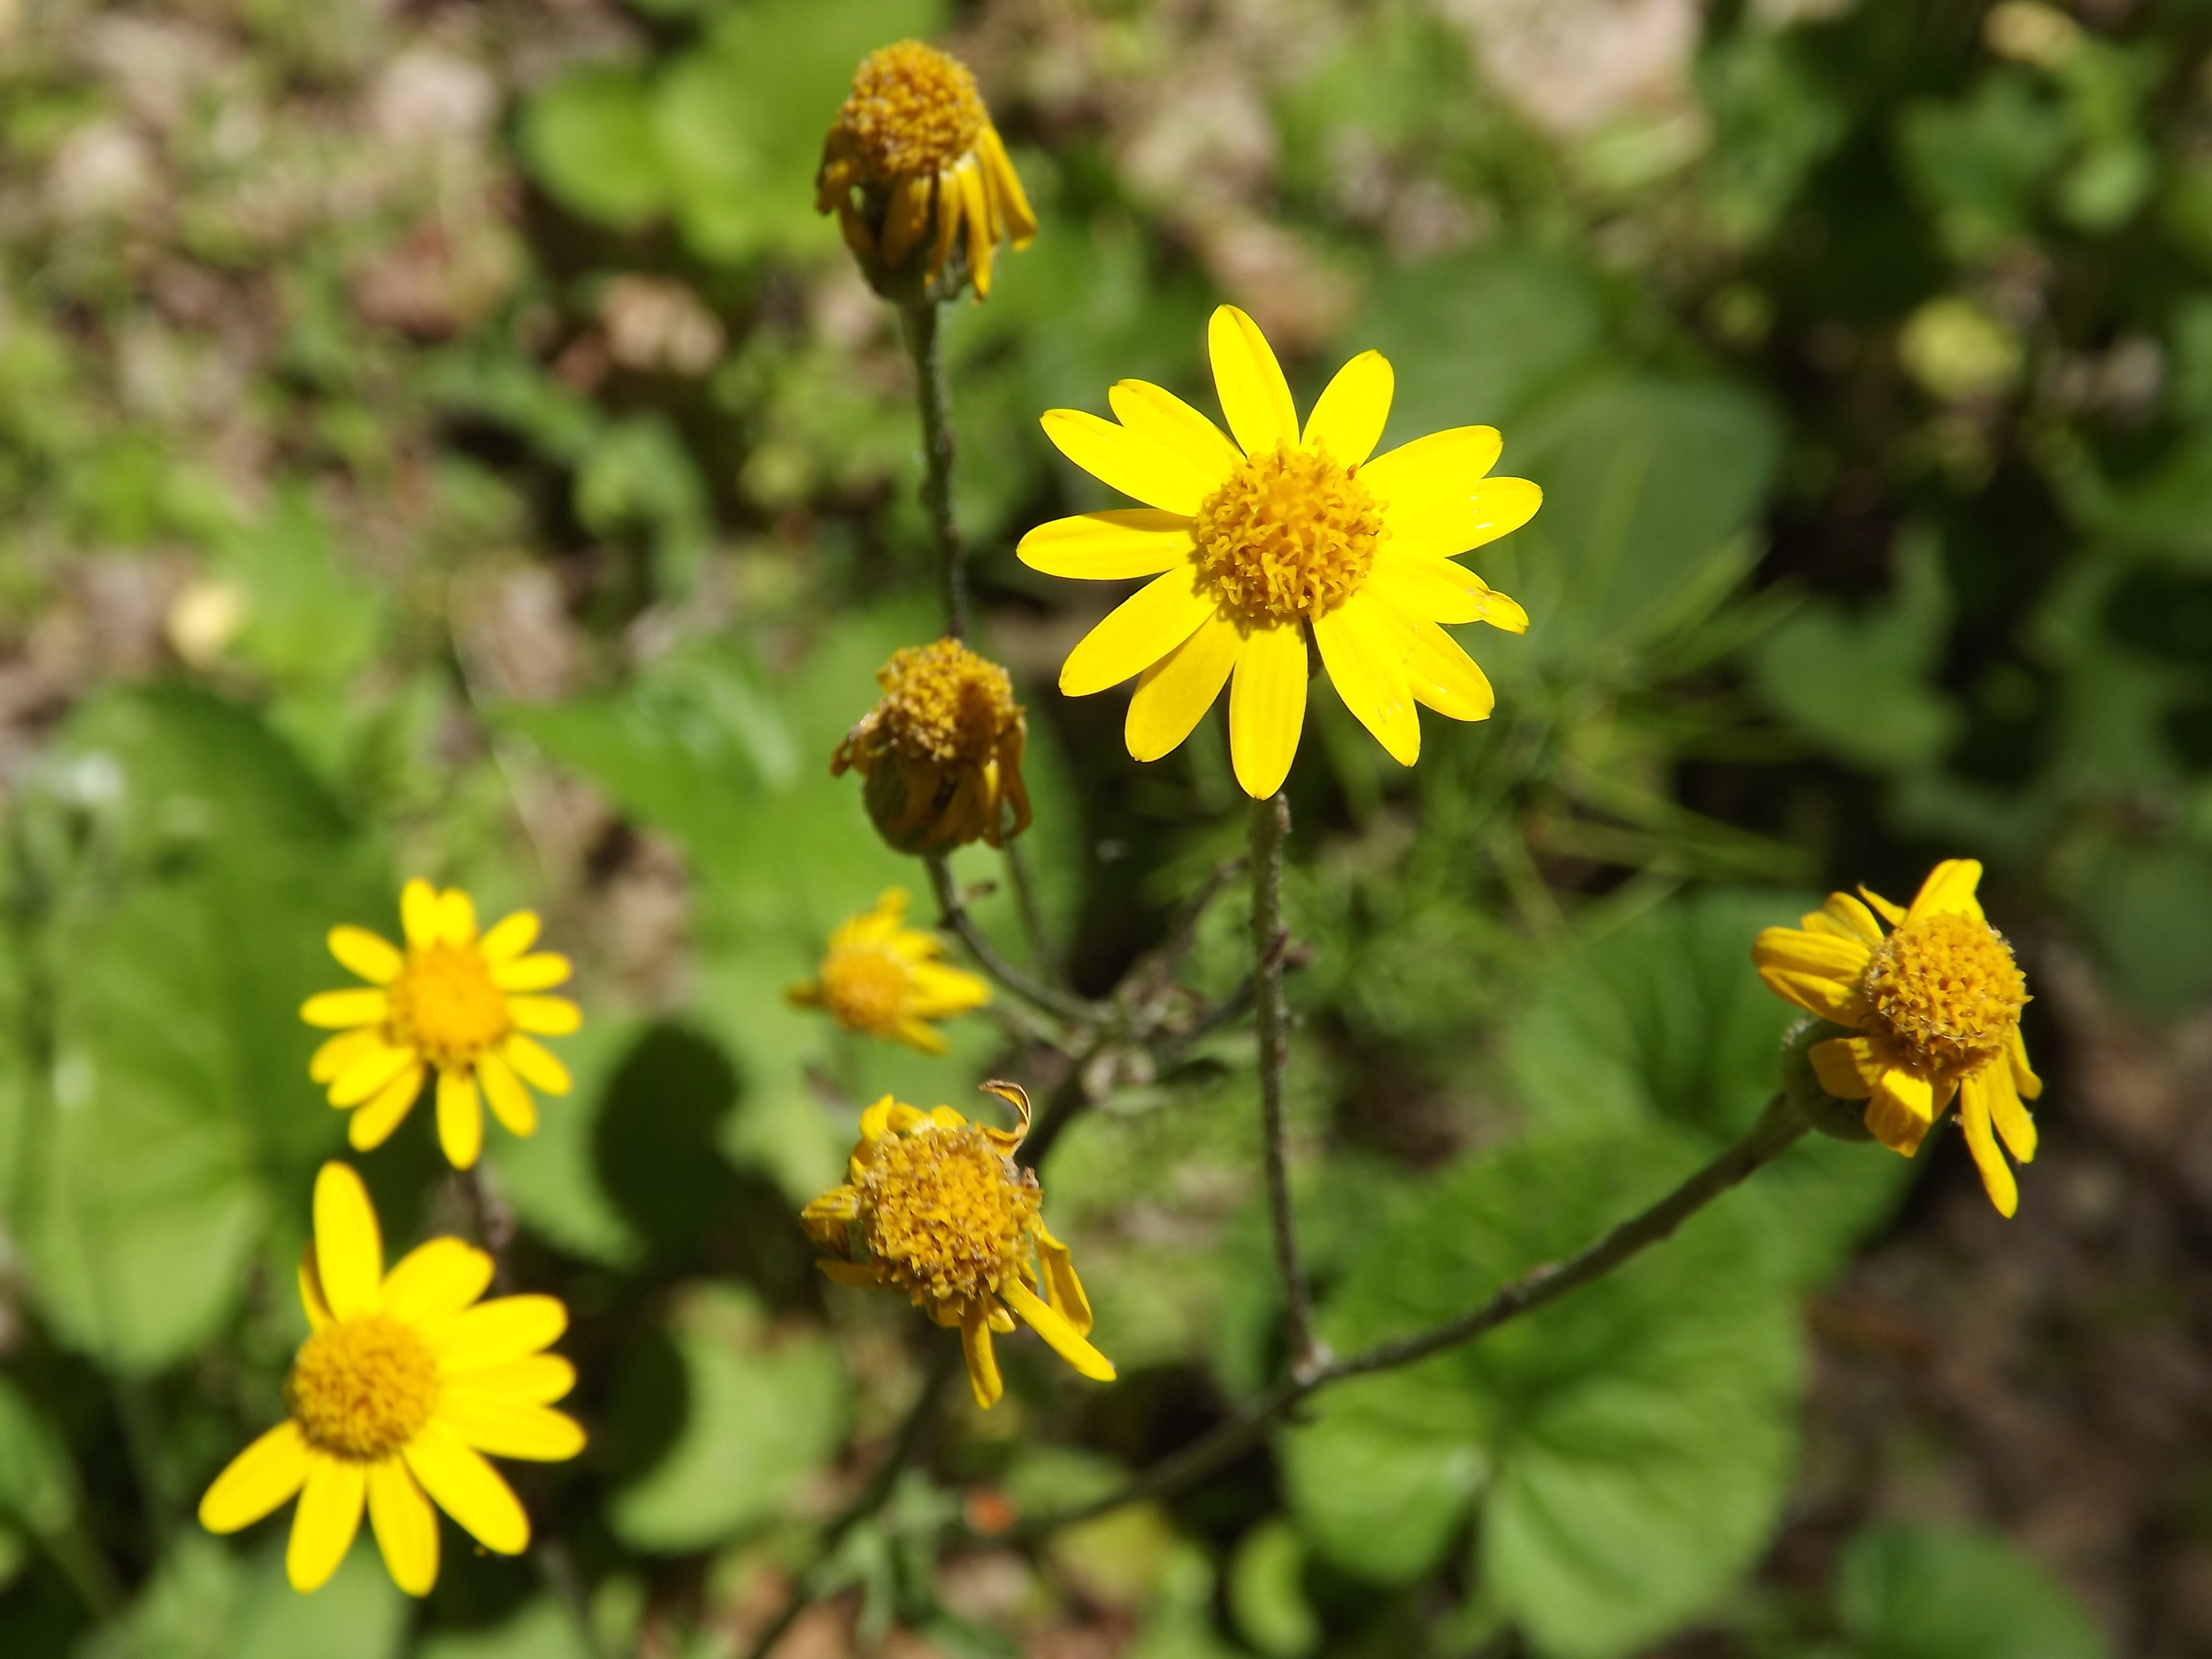 Golden Ragwort ( Packera aurea ) - Golden Ragwort is a pretty yellow wildflower I've only recently identified. Native to our area, I tend to find it along trails and old logging roads in near to full sun.